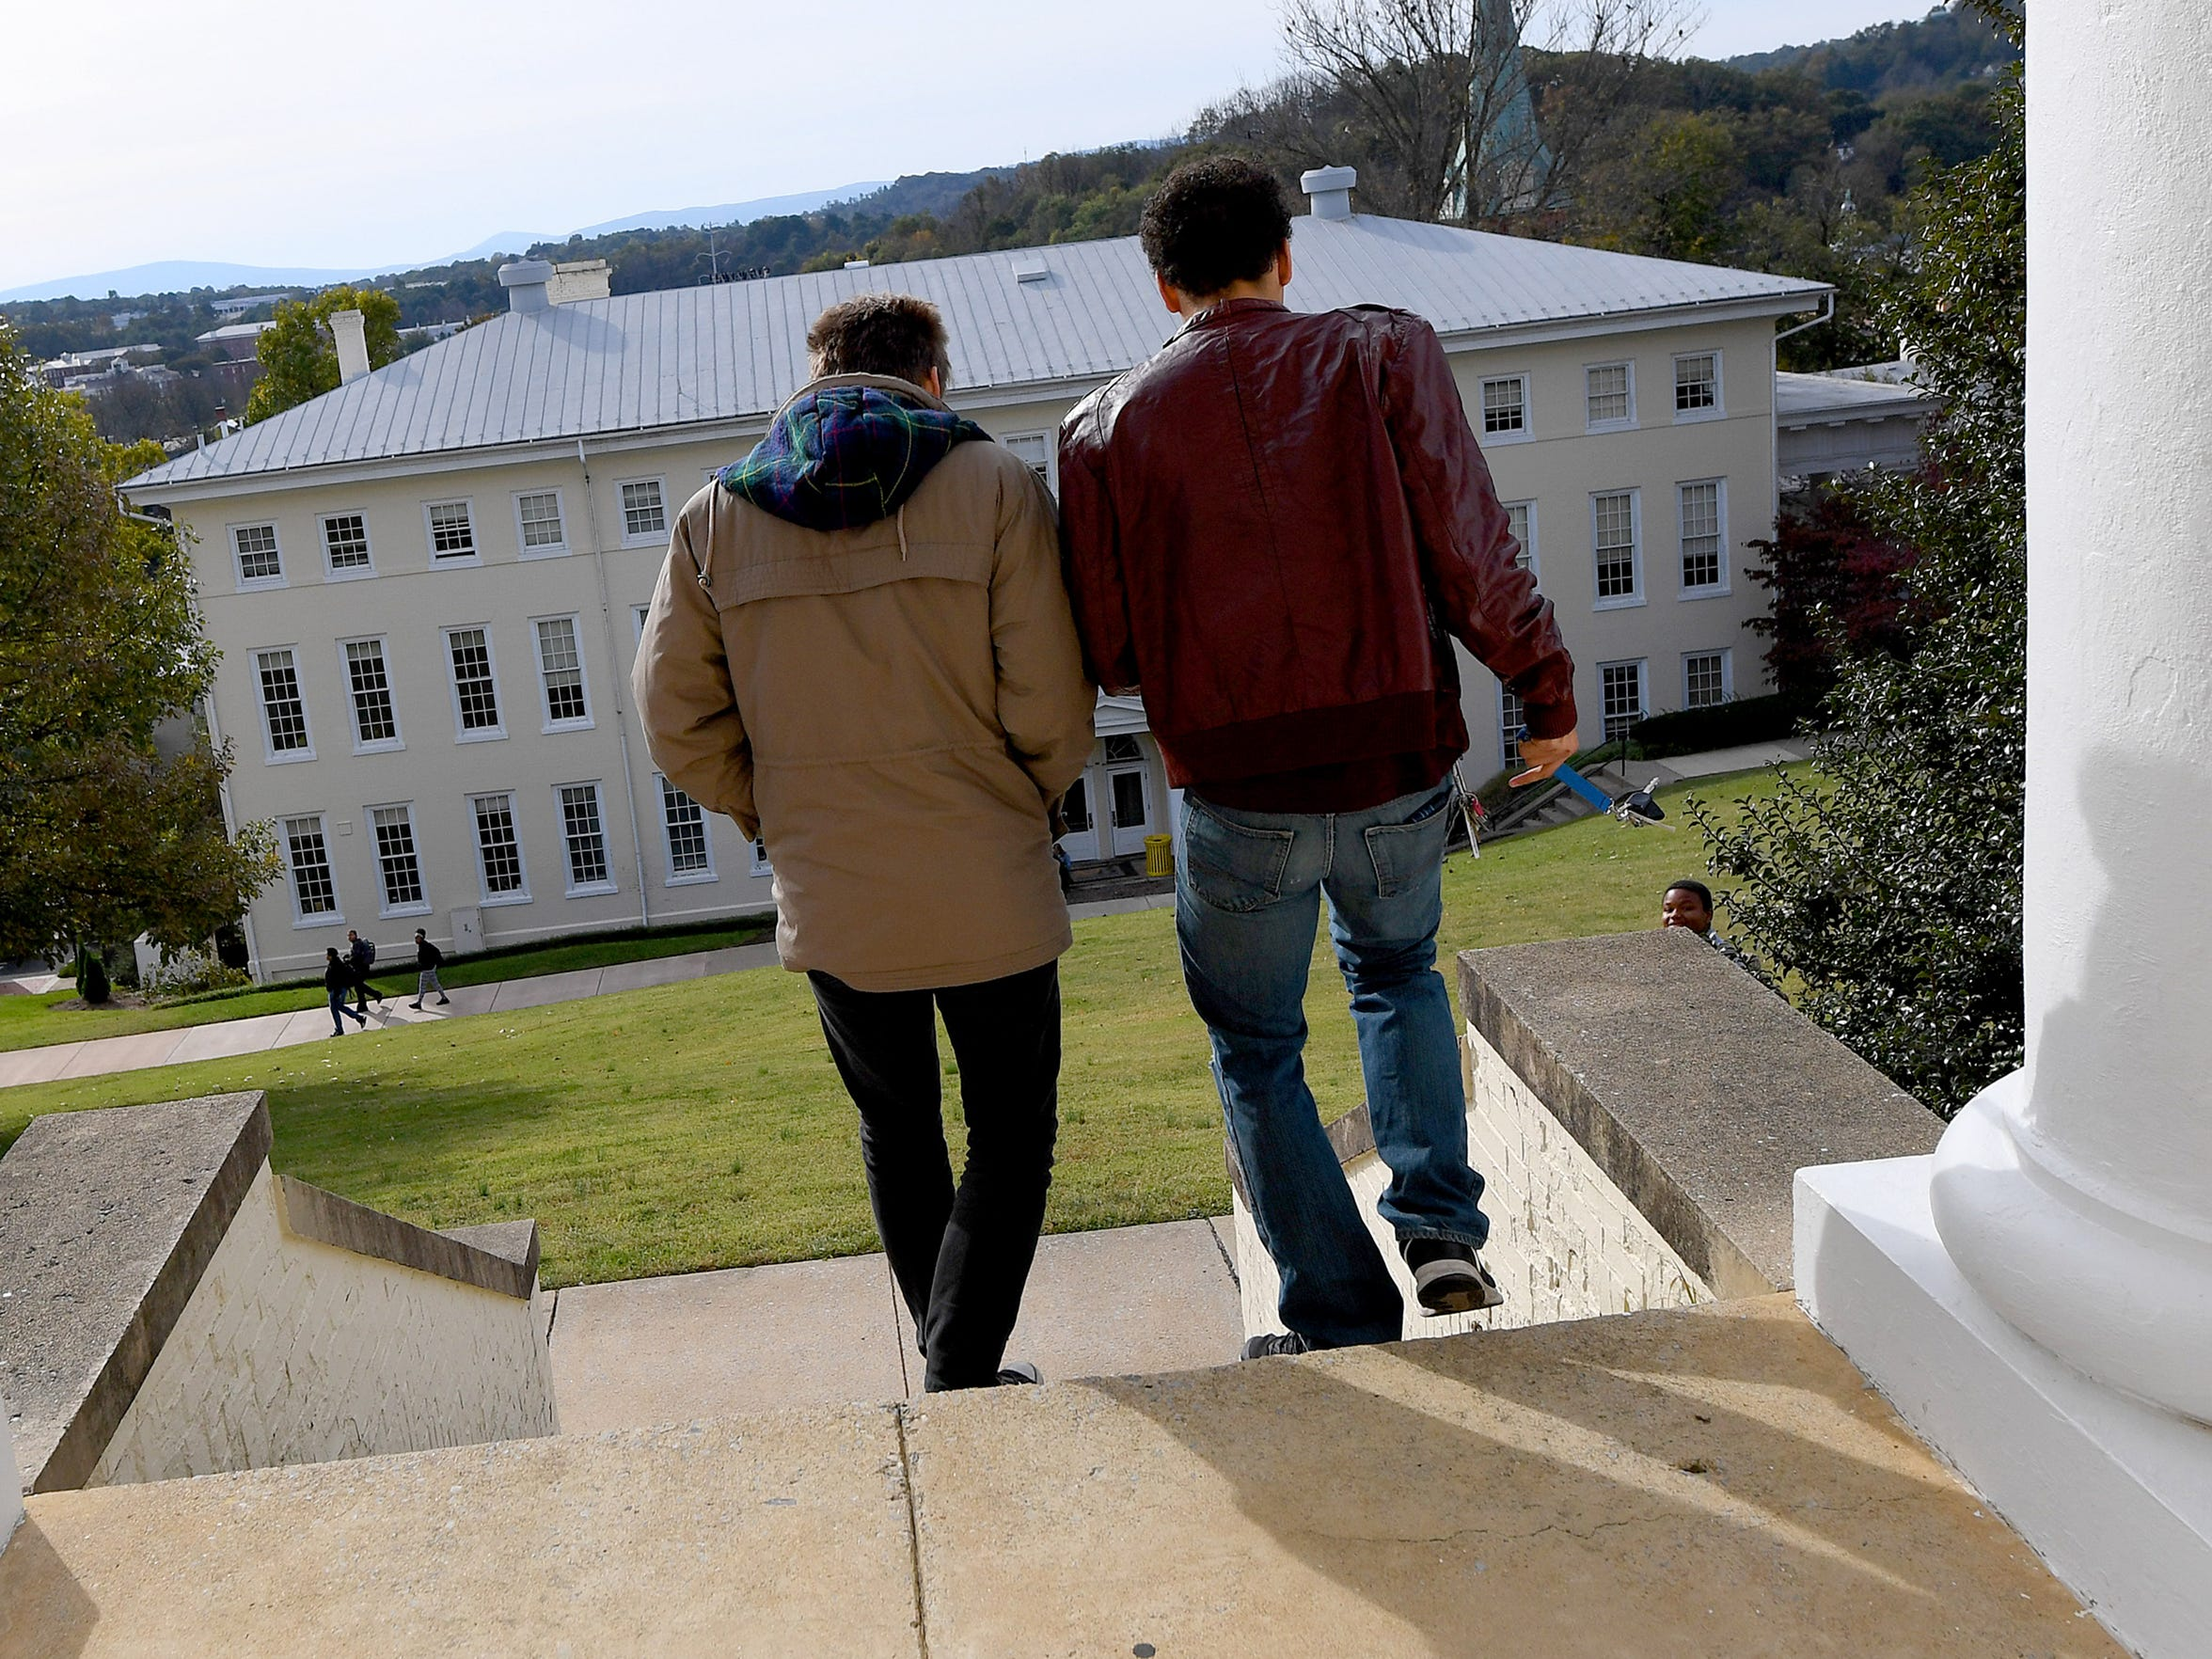 Juniors Dominic Walker and Logan Davenport of Mary Baldwin University descend the steps of Wenger Hall on campus on October 25, 2018.